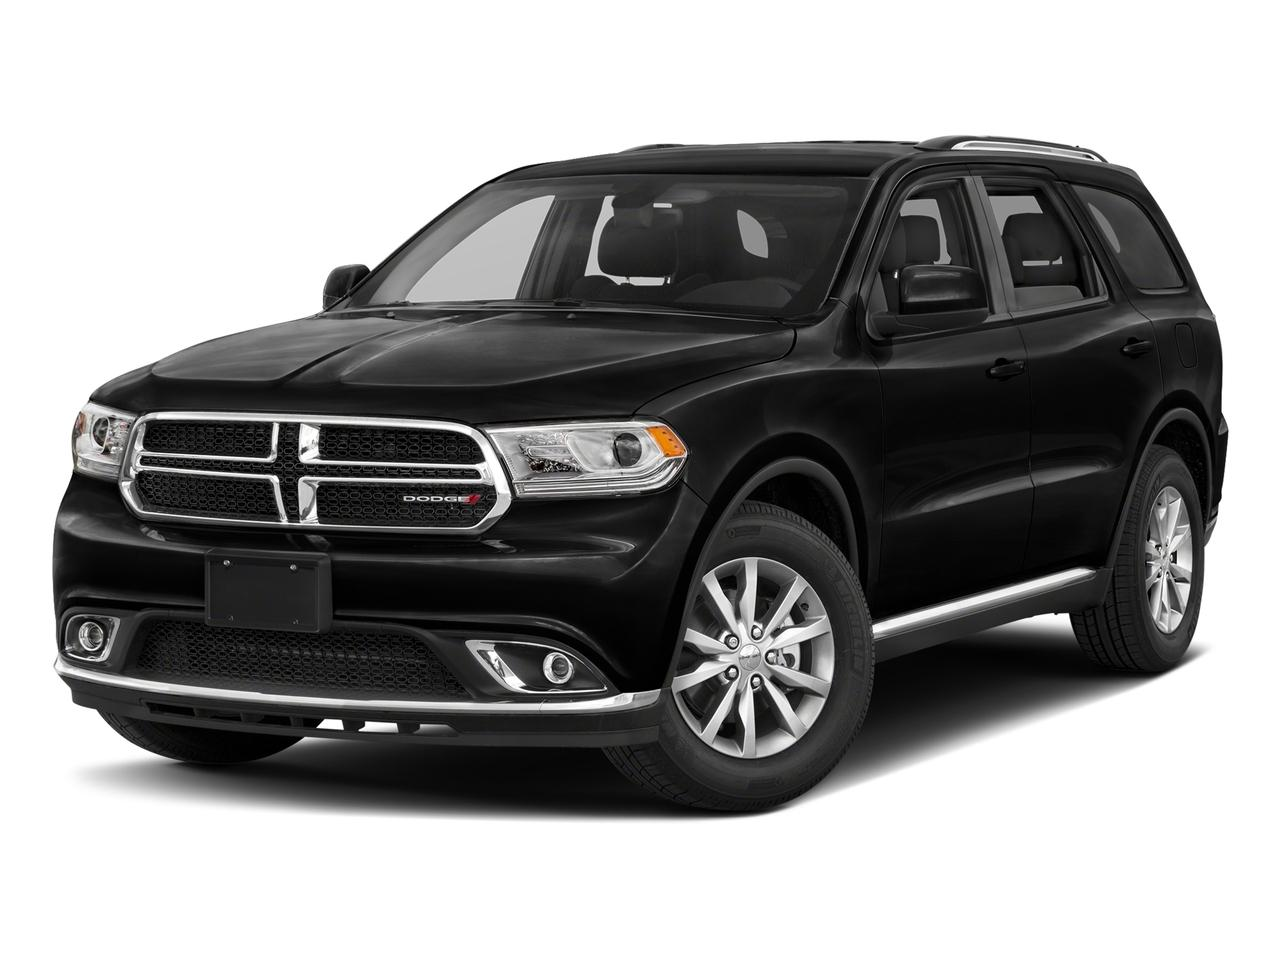 2017 Dodge Durango Vehicle Photo in Greeley, CO 80634